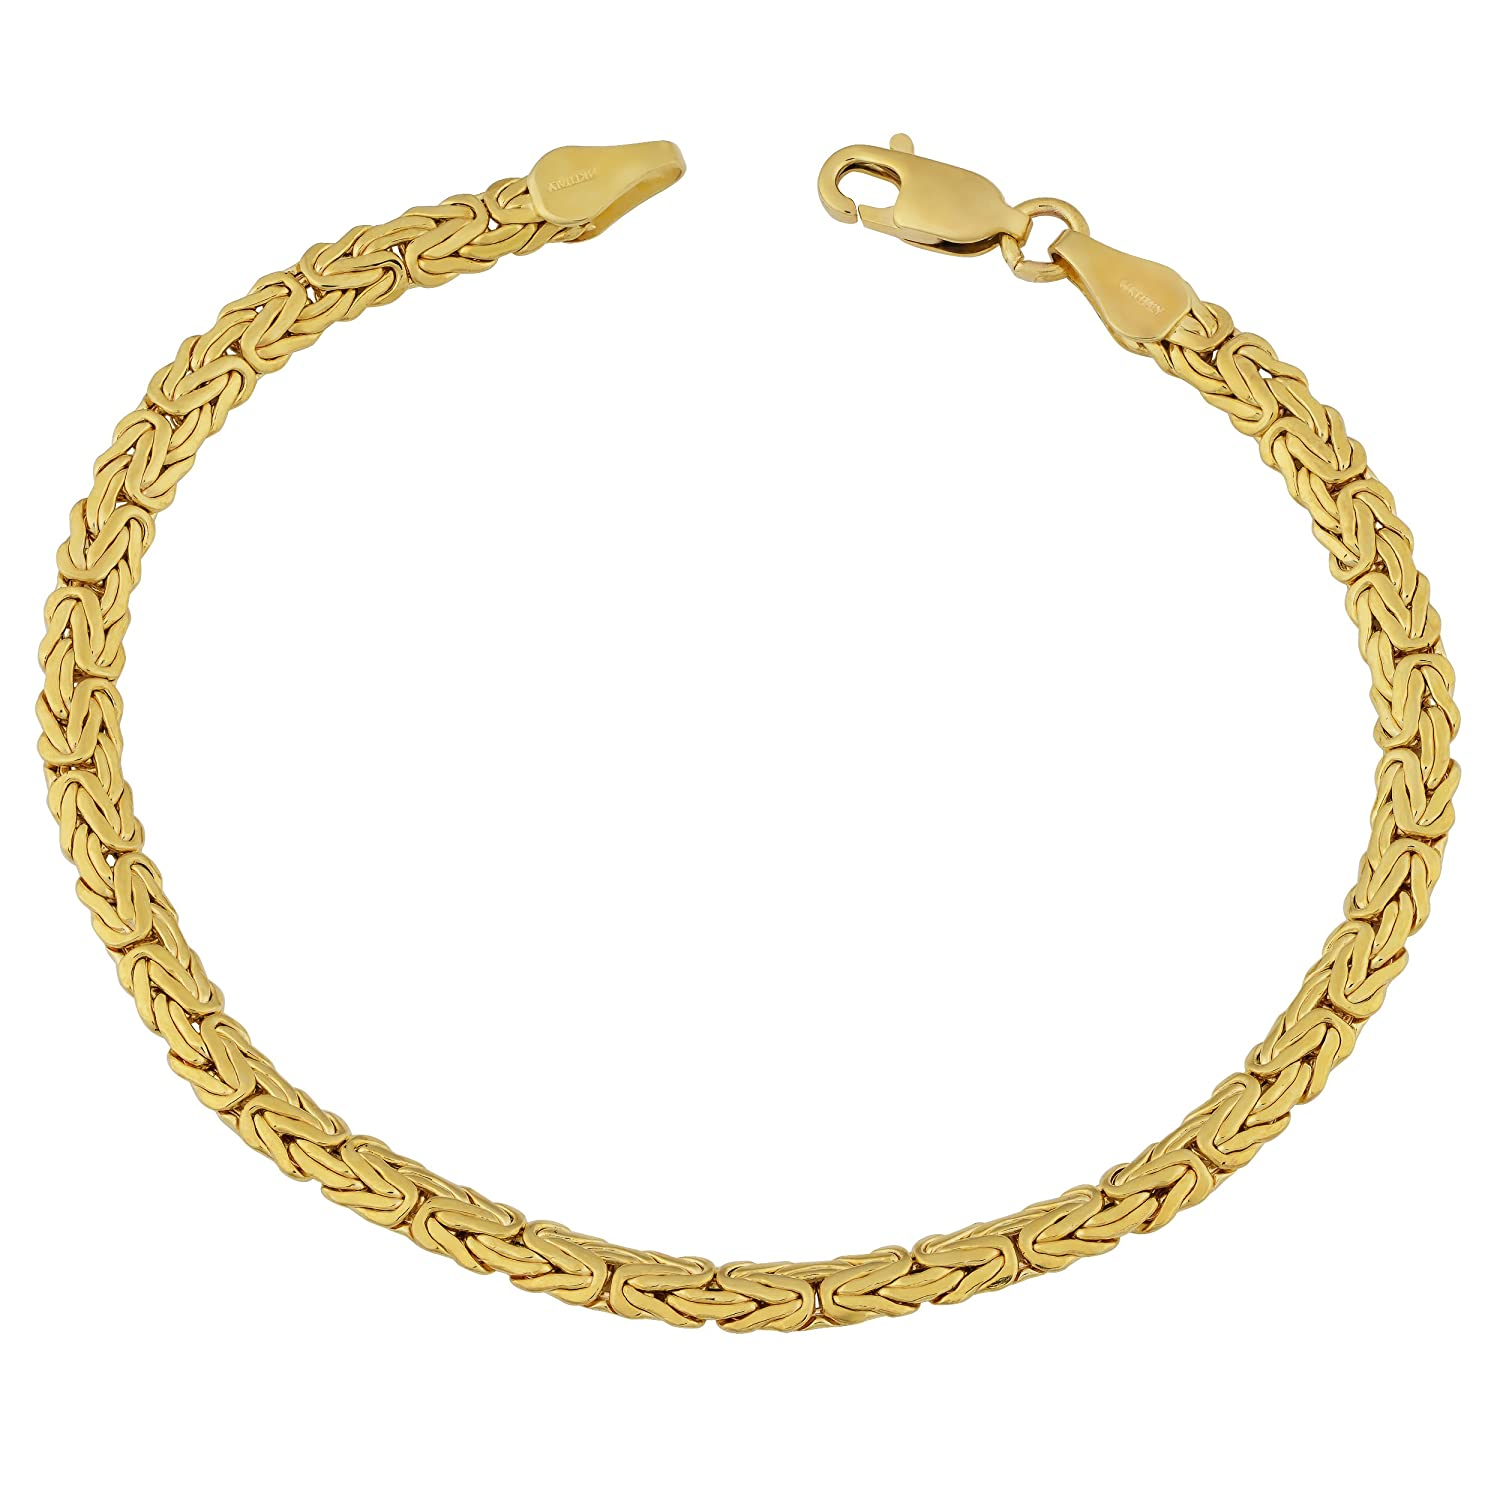 armband line website gold kids elegant schmuck buy mhaaaaaabsob designs anklet for karat